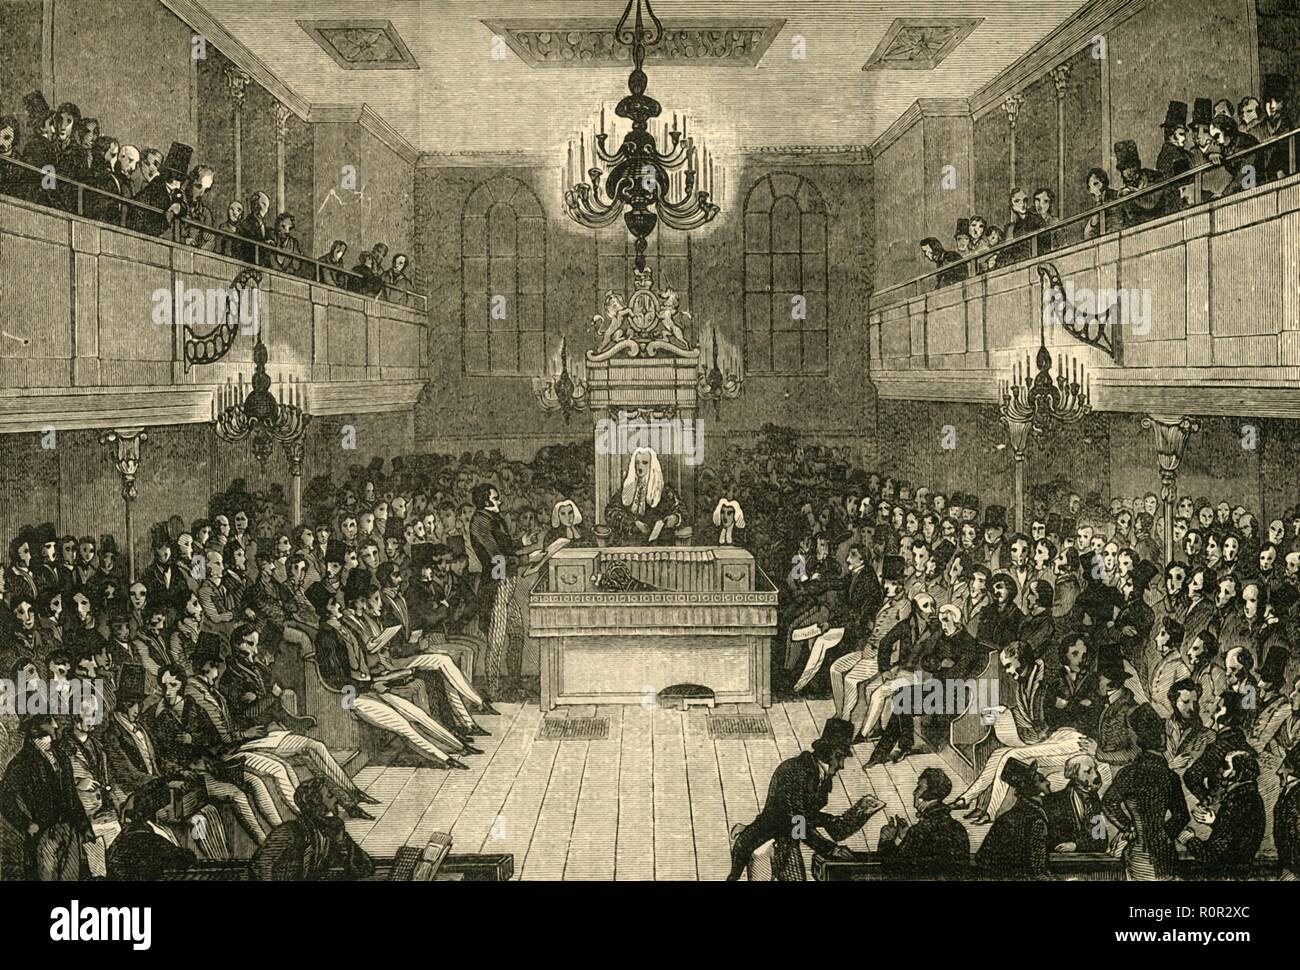 'Interior of the House of Commons, 1834', (1881). One of the two chambers in the Houses of Parliament in London. Much of the Palace of Westminster was destroyed in a fire in 1834. From Old and New London: A Narrative of Its History, Its People, and Its Places. Westminster and the Western Suburbs, by Edward Walford, Vol. III. [Cassell, Petter, Galpin & Co., London, Paris & New York, 1881] - Stock Image